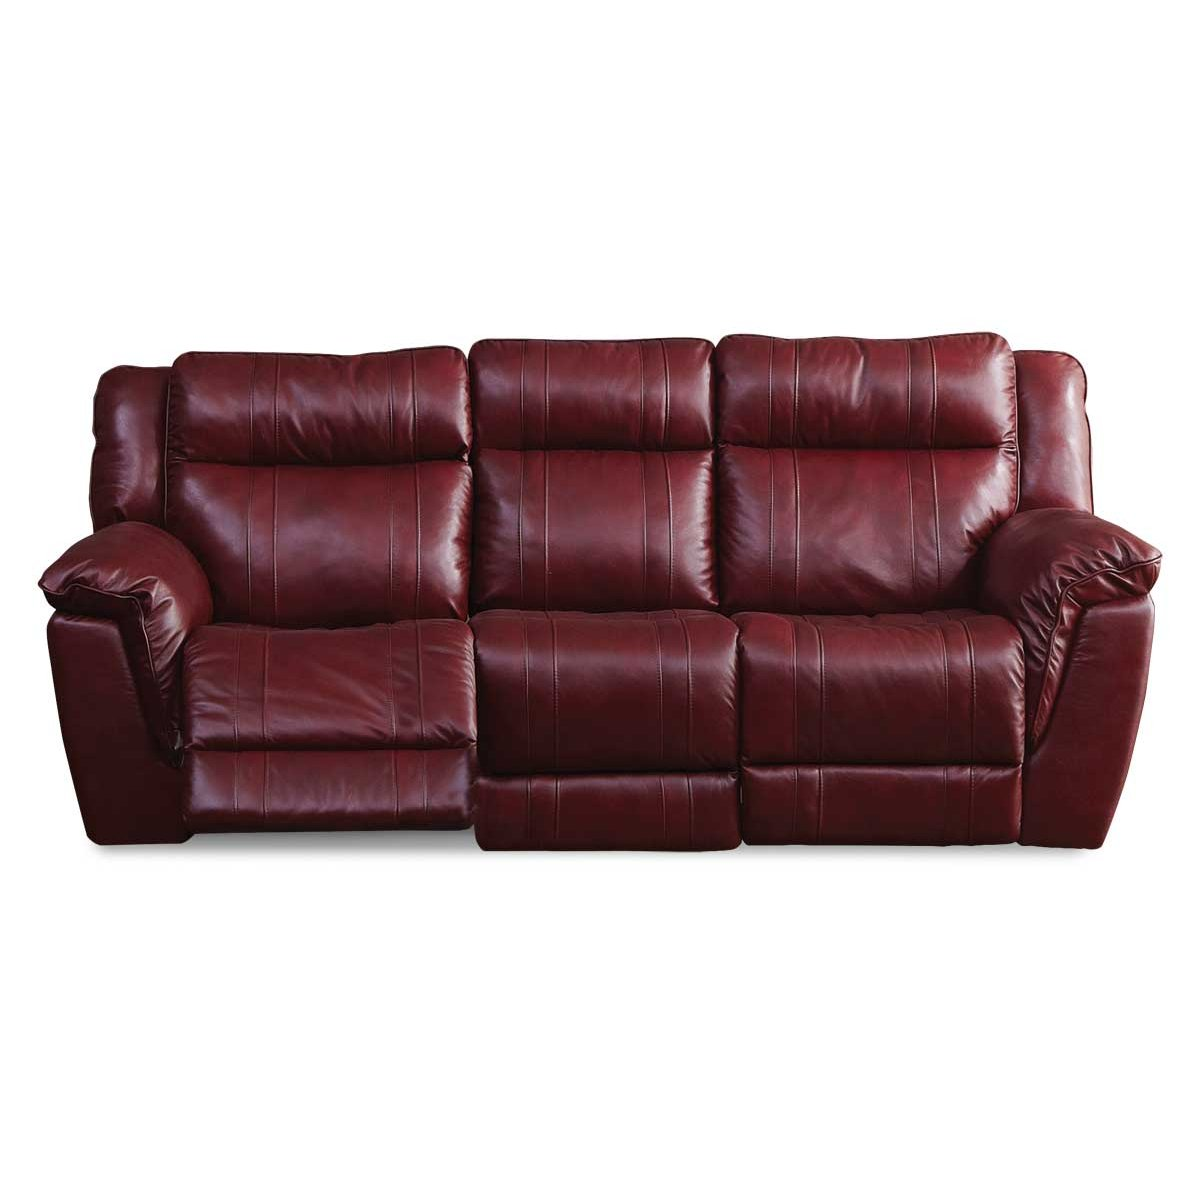 Red Leather Match Dual Manual Reclining Sofa   K Motion